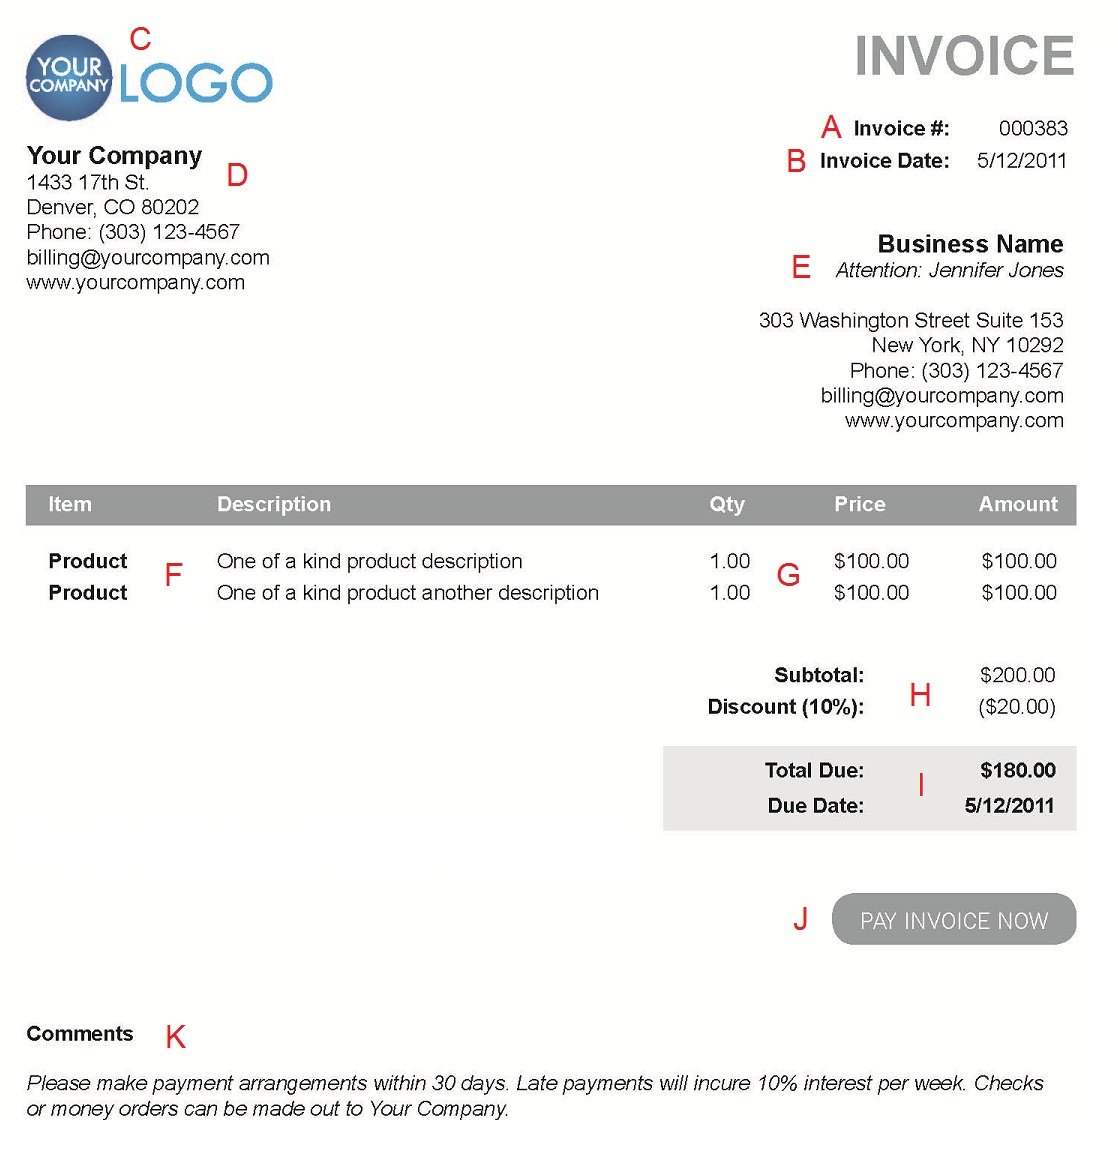 Ultrablogus  Outstanding The  Different Sections Of An Electronic Payment Invoice With Foxy A  With Divine Best Android Invoice App Also How To Find Factory Invoice Price In Addition Free Sales Invoice Template And Canada Customs Invoice Template As Well As Blank Commercial Invoice Form Additionally Adams Invoice Forms From Paysimplecom With Ultrablogus  Foxy The  Different Sections Of An Electronic Payment Invoice With Divine A  And Outstanding Best Android Invoice App Also How To Find Factory Invoice Price In Addition Free Sales Invoice Template From Paysimplecom